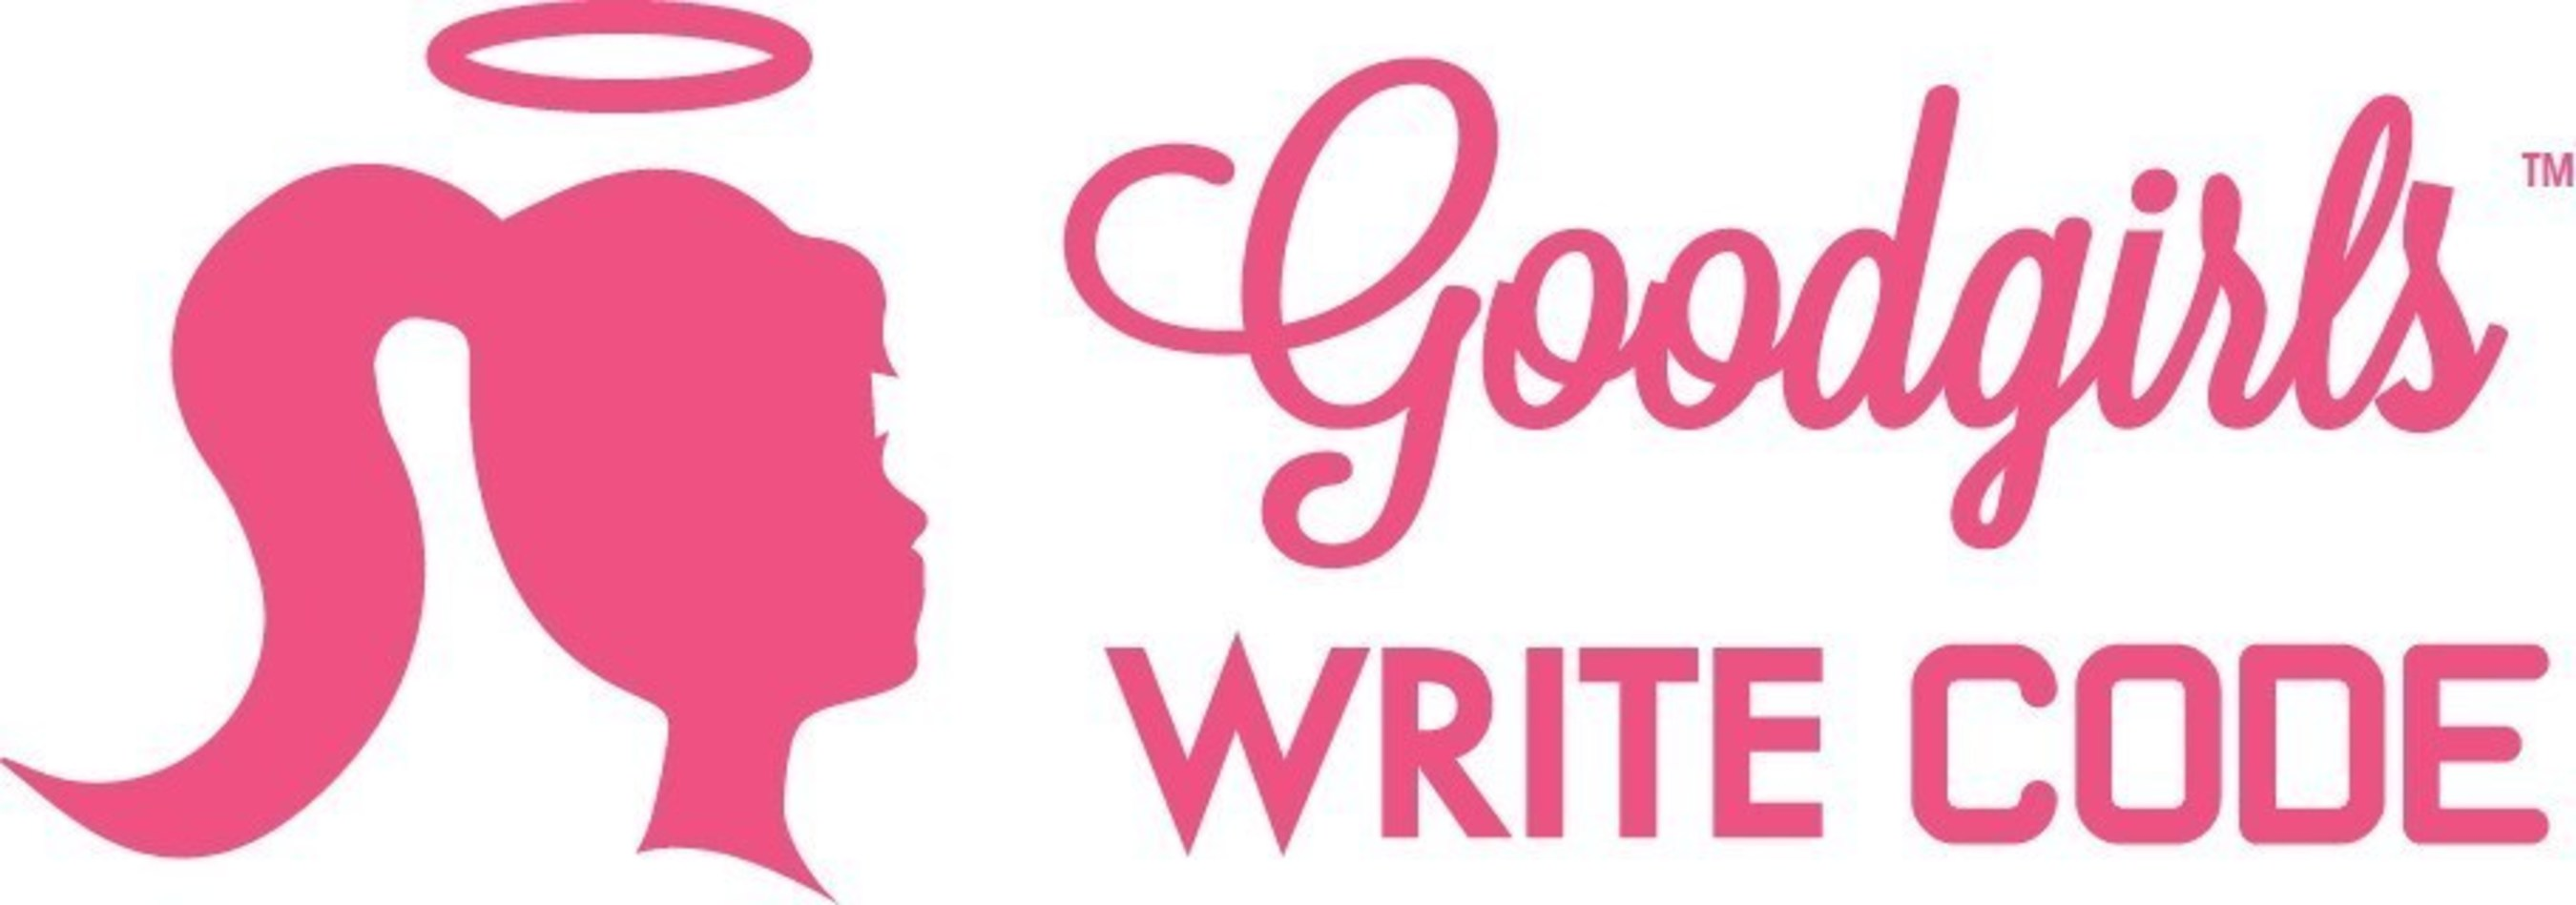 Goodgirls Write Code is a 501(c)(3) non-profit organization dedicated to the empowerment of girls in the fields of science, technology, engineering and math, or STEM. Our interactive programs aim to motivate and educate girls providing them with the skills they need to become the next generation of women-leaders, entrepreneurs and mentors.